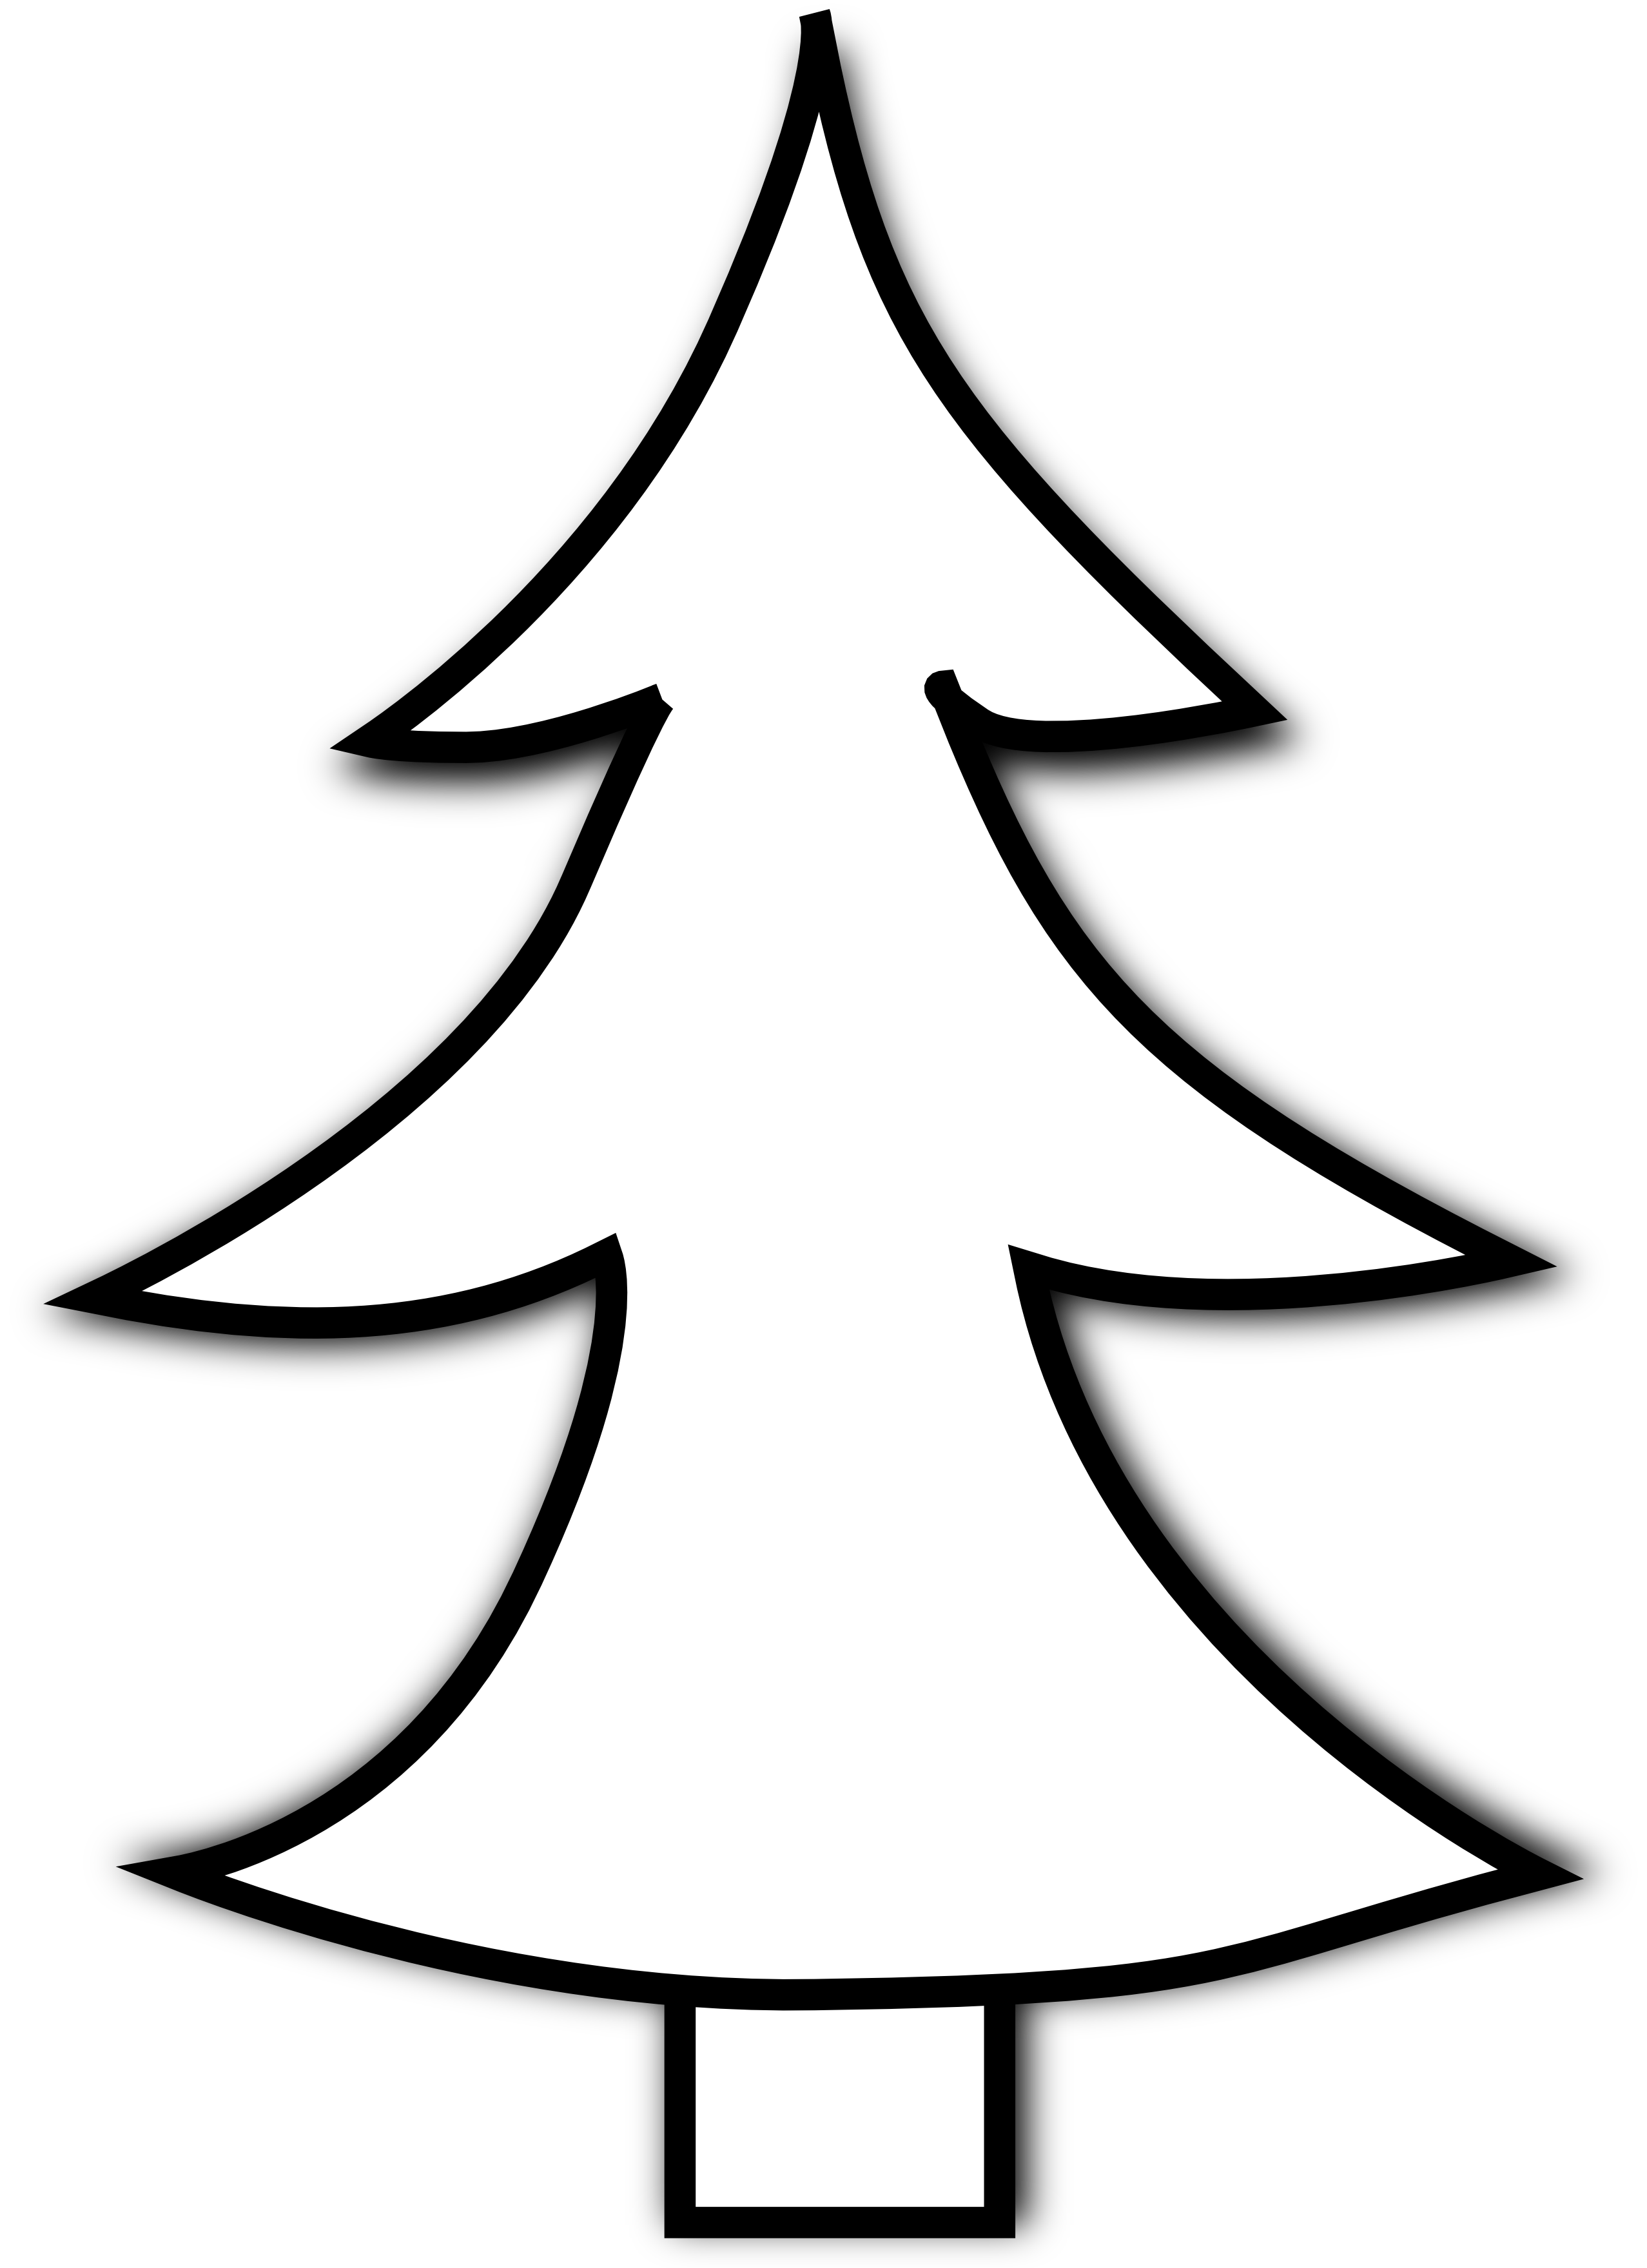 Decoration clipart black and white Tree christmas bells white and